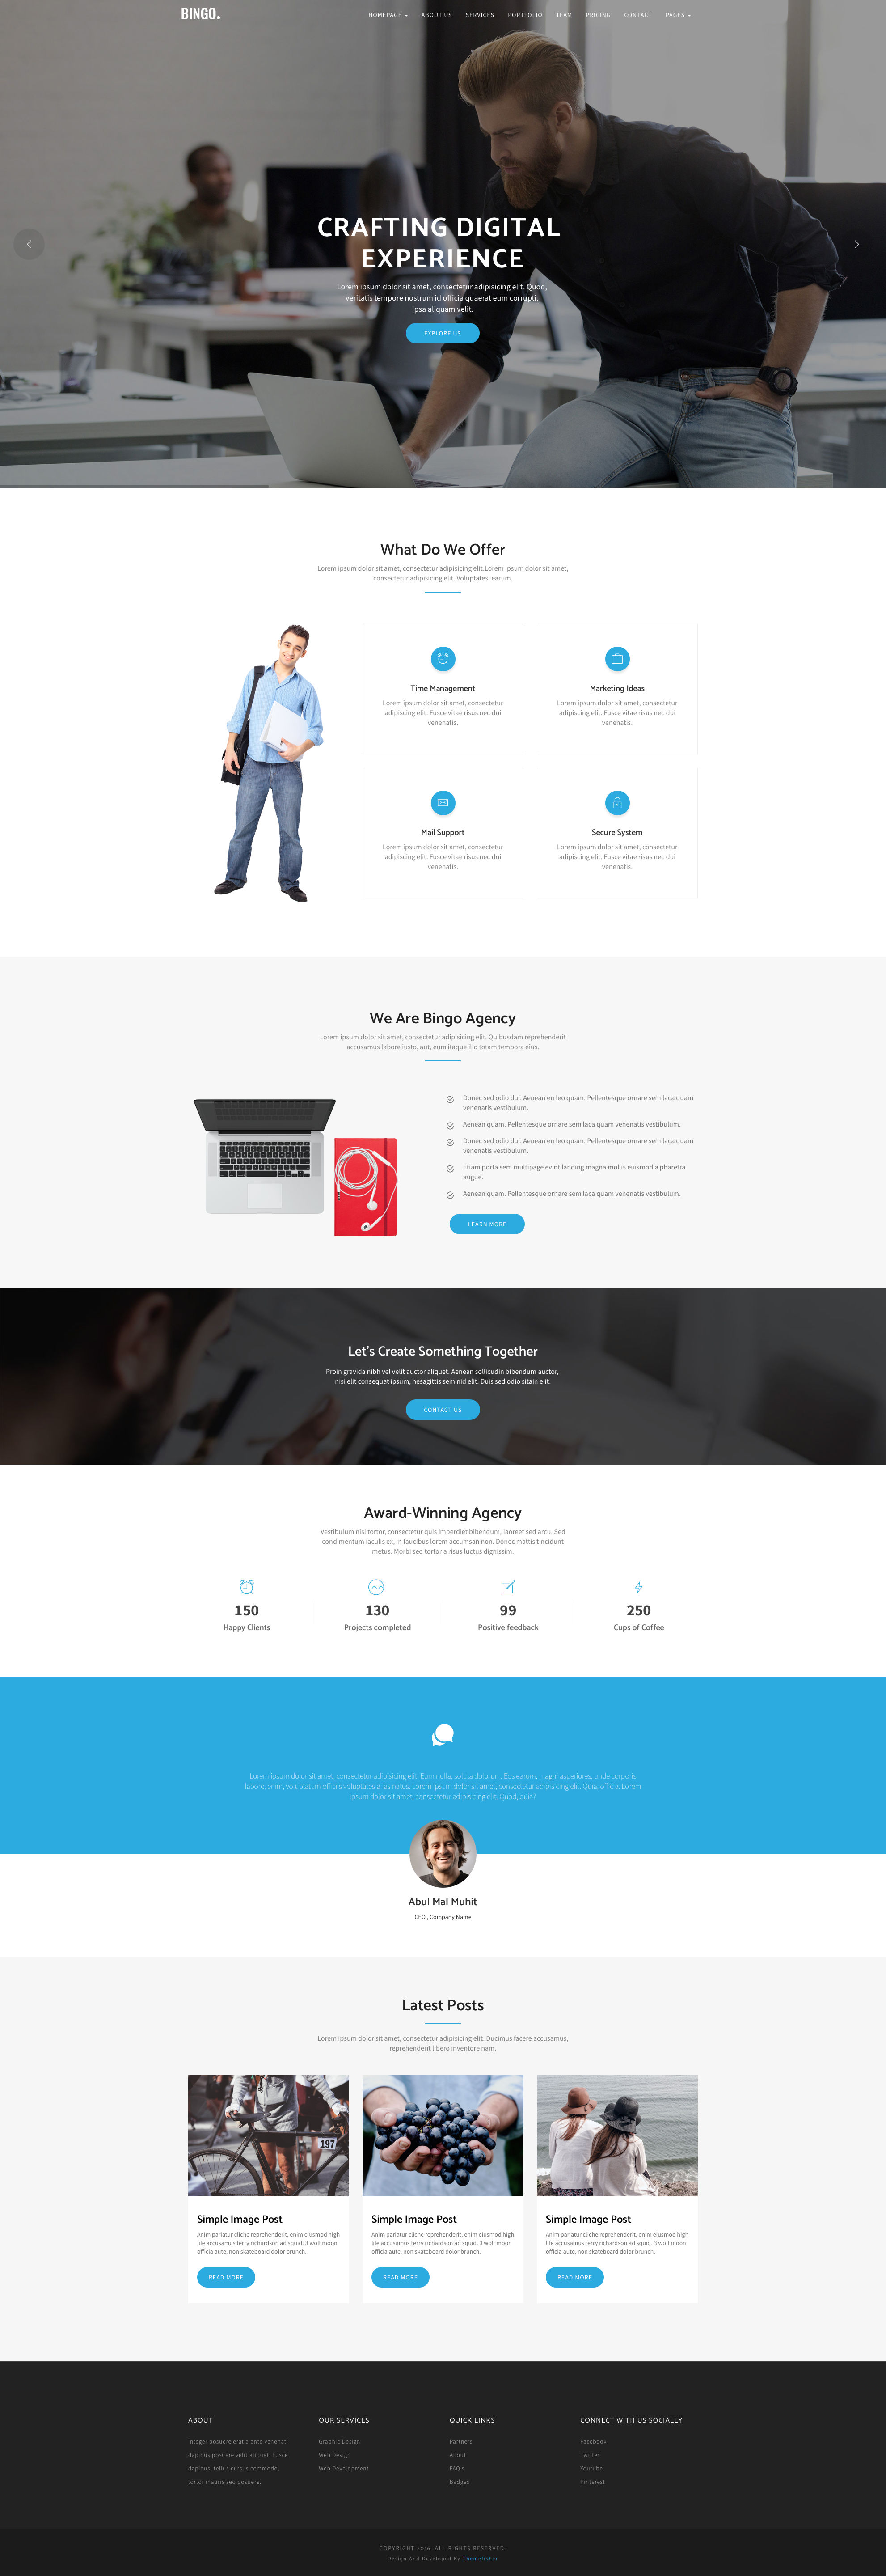 Bingo free HTML5 multi-page website template is the ideal choice for business, corporate or startup websites. Bingo HTML template comes with 70+ crafted components, it is fully responsive, retina ready and comes with Bootstrap CSS Grid System.